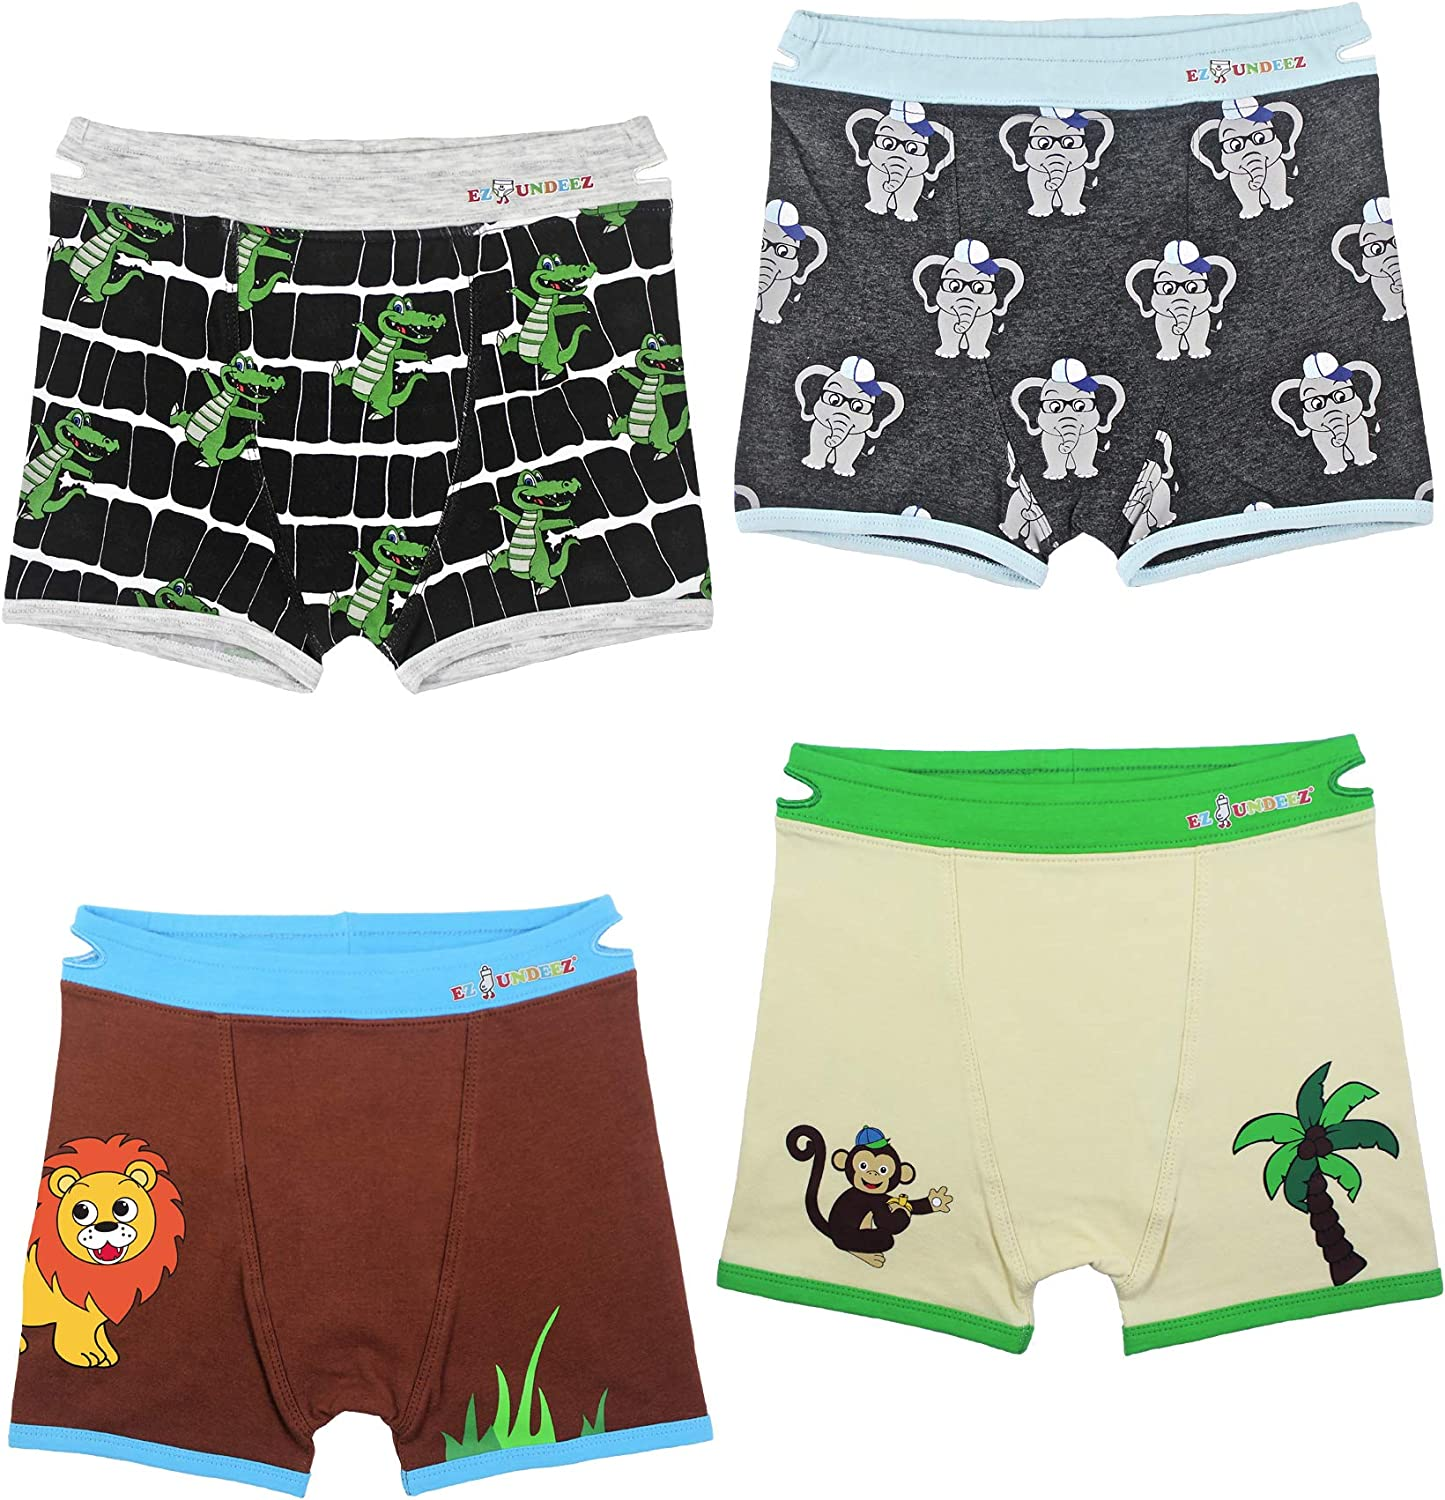 Boys Boxer Briefs Toddler Training Underwear Easy Pull Up Handles (4 Pack)